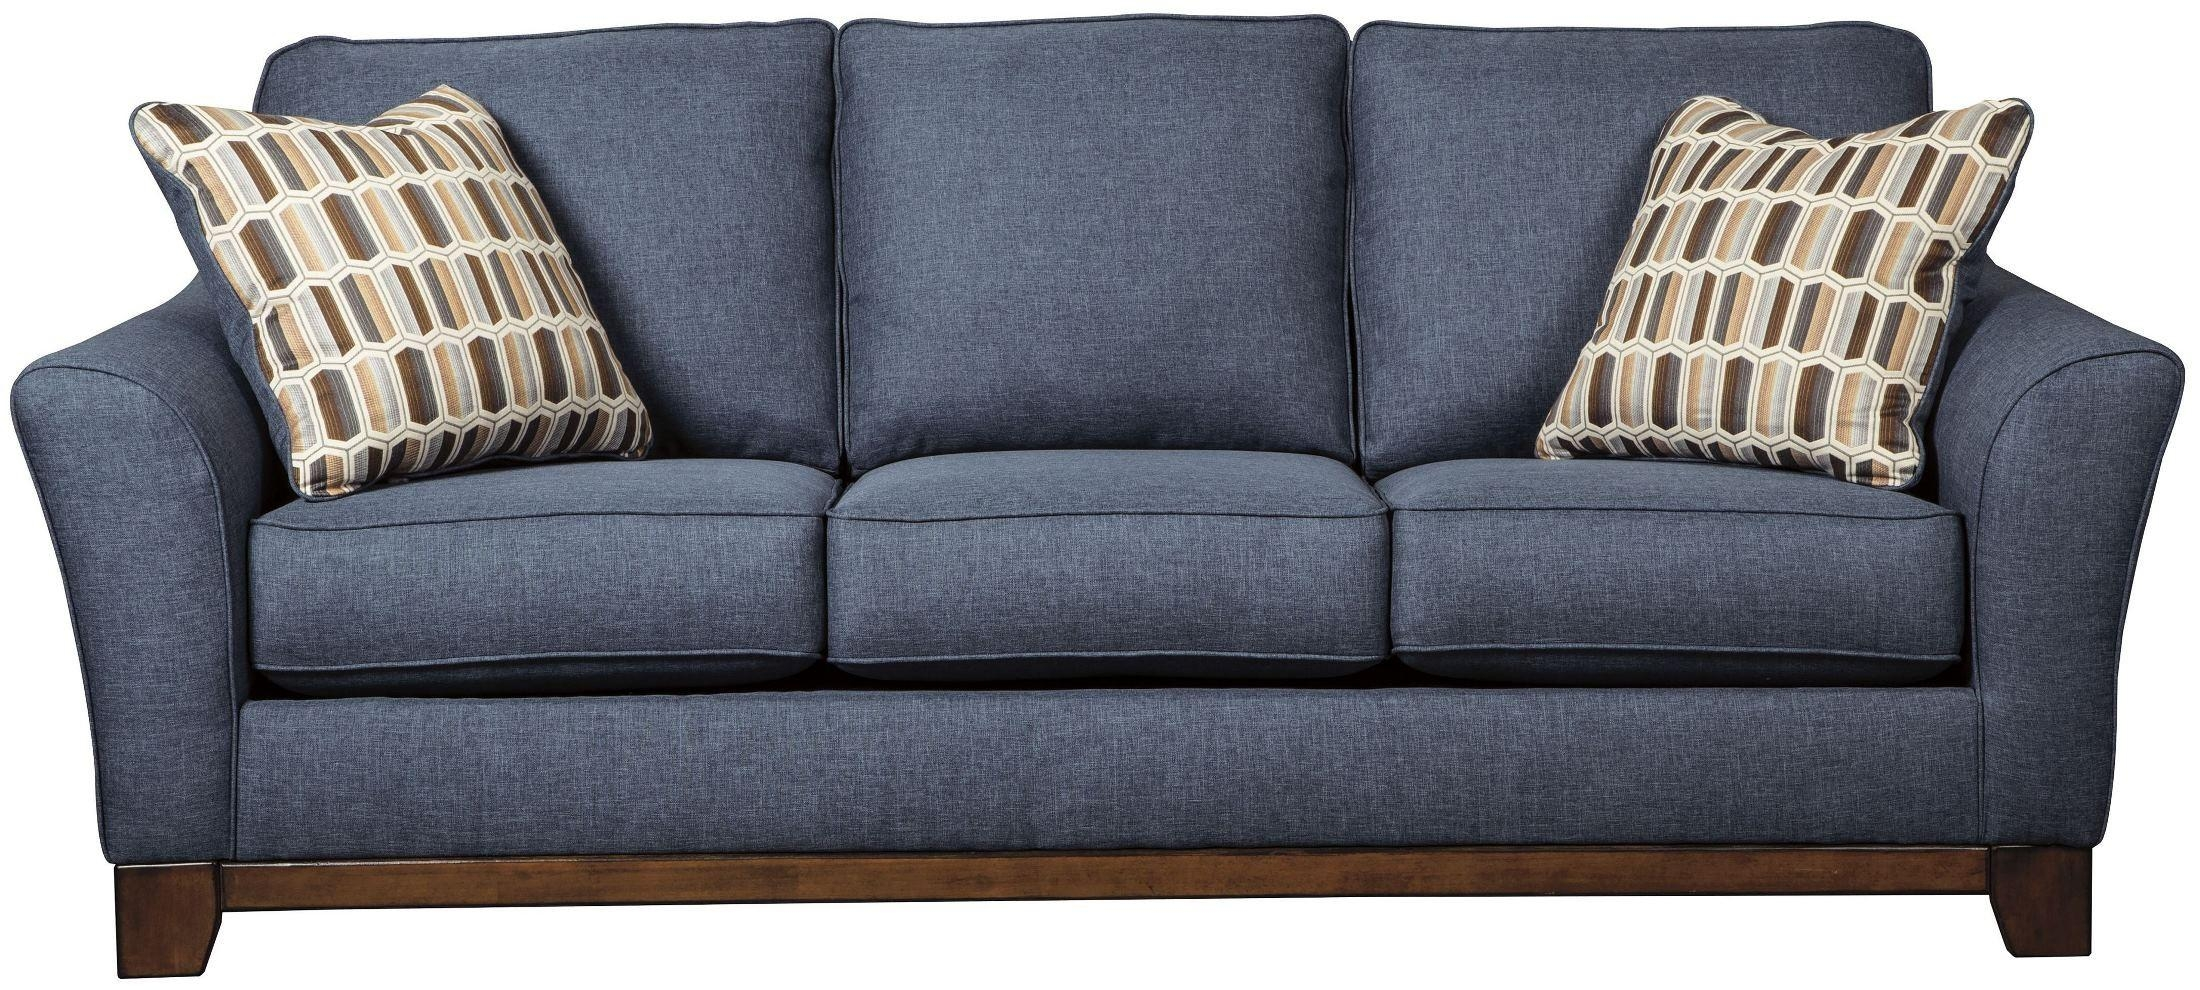 Janley Denim Sofa From Ashley | Coleman Furniture Inside Blue Denim Sofas (Image 10 of 20)